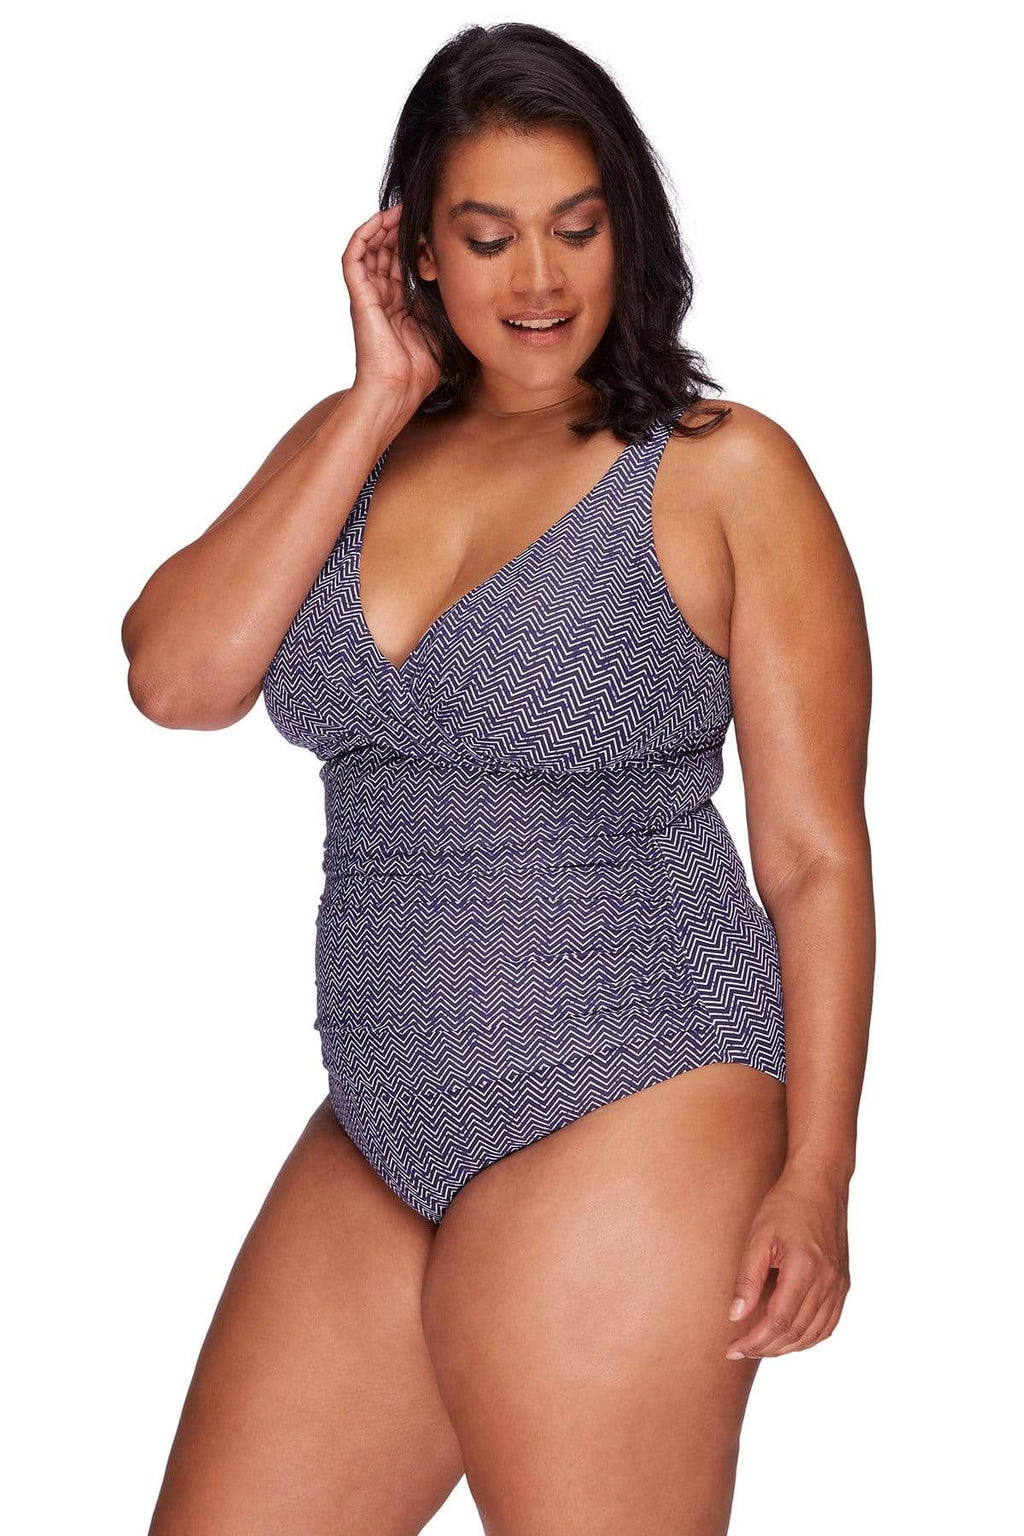 Artesands One Piece Navy Zig Zag Delacroix One Piece Plus Size Curvy